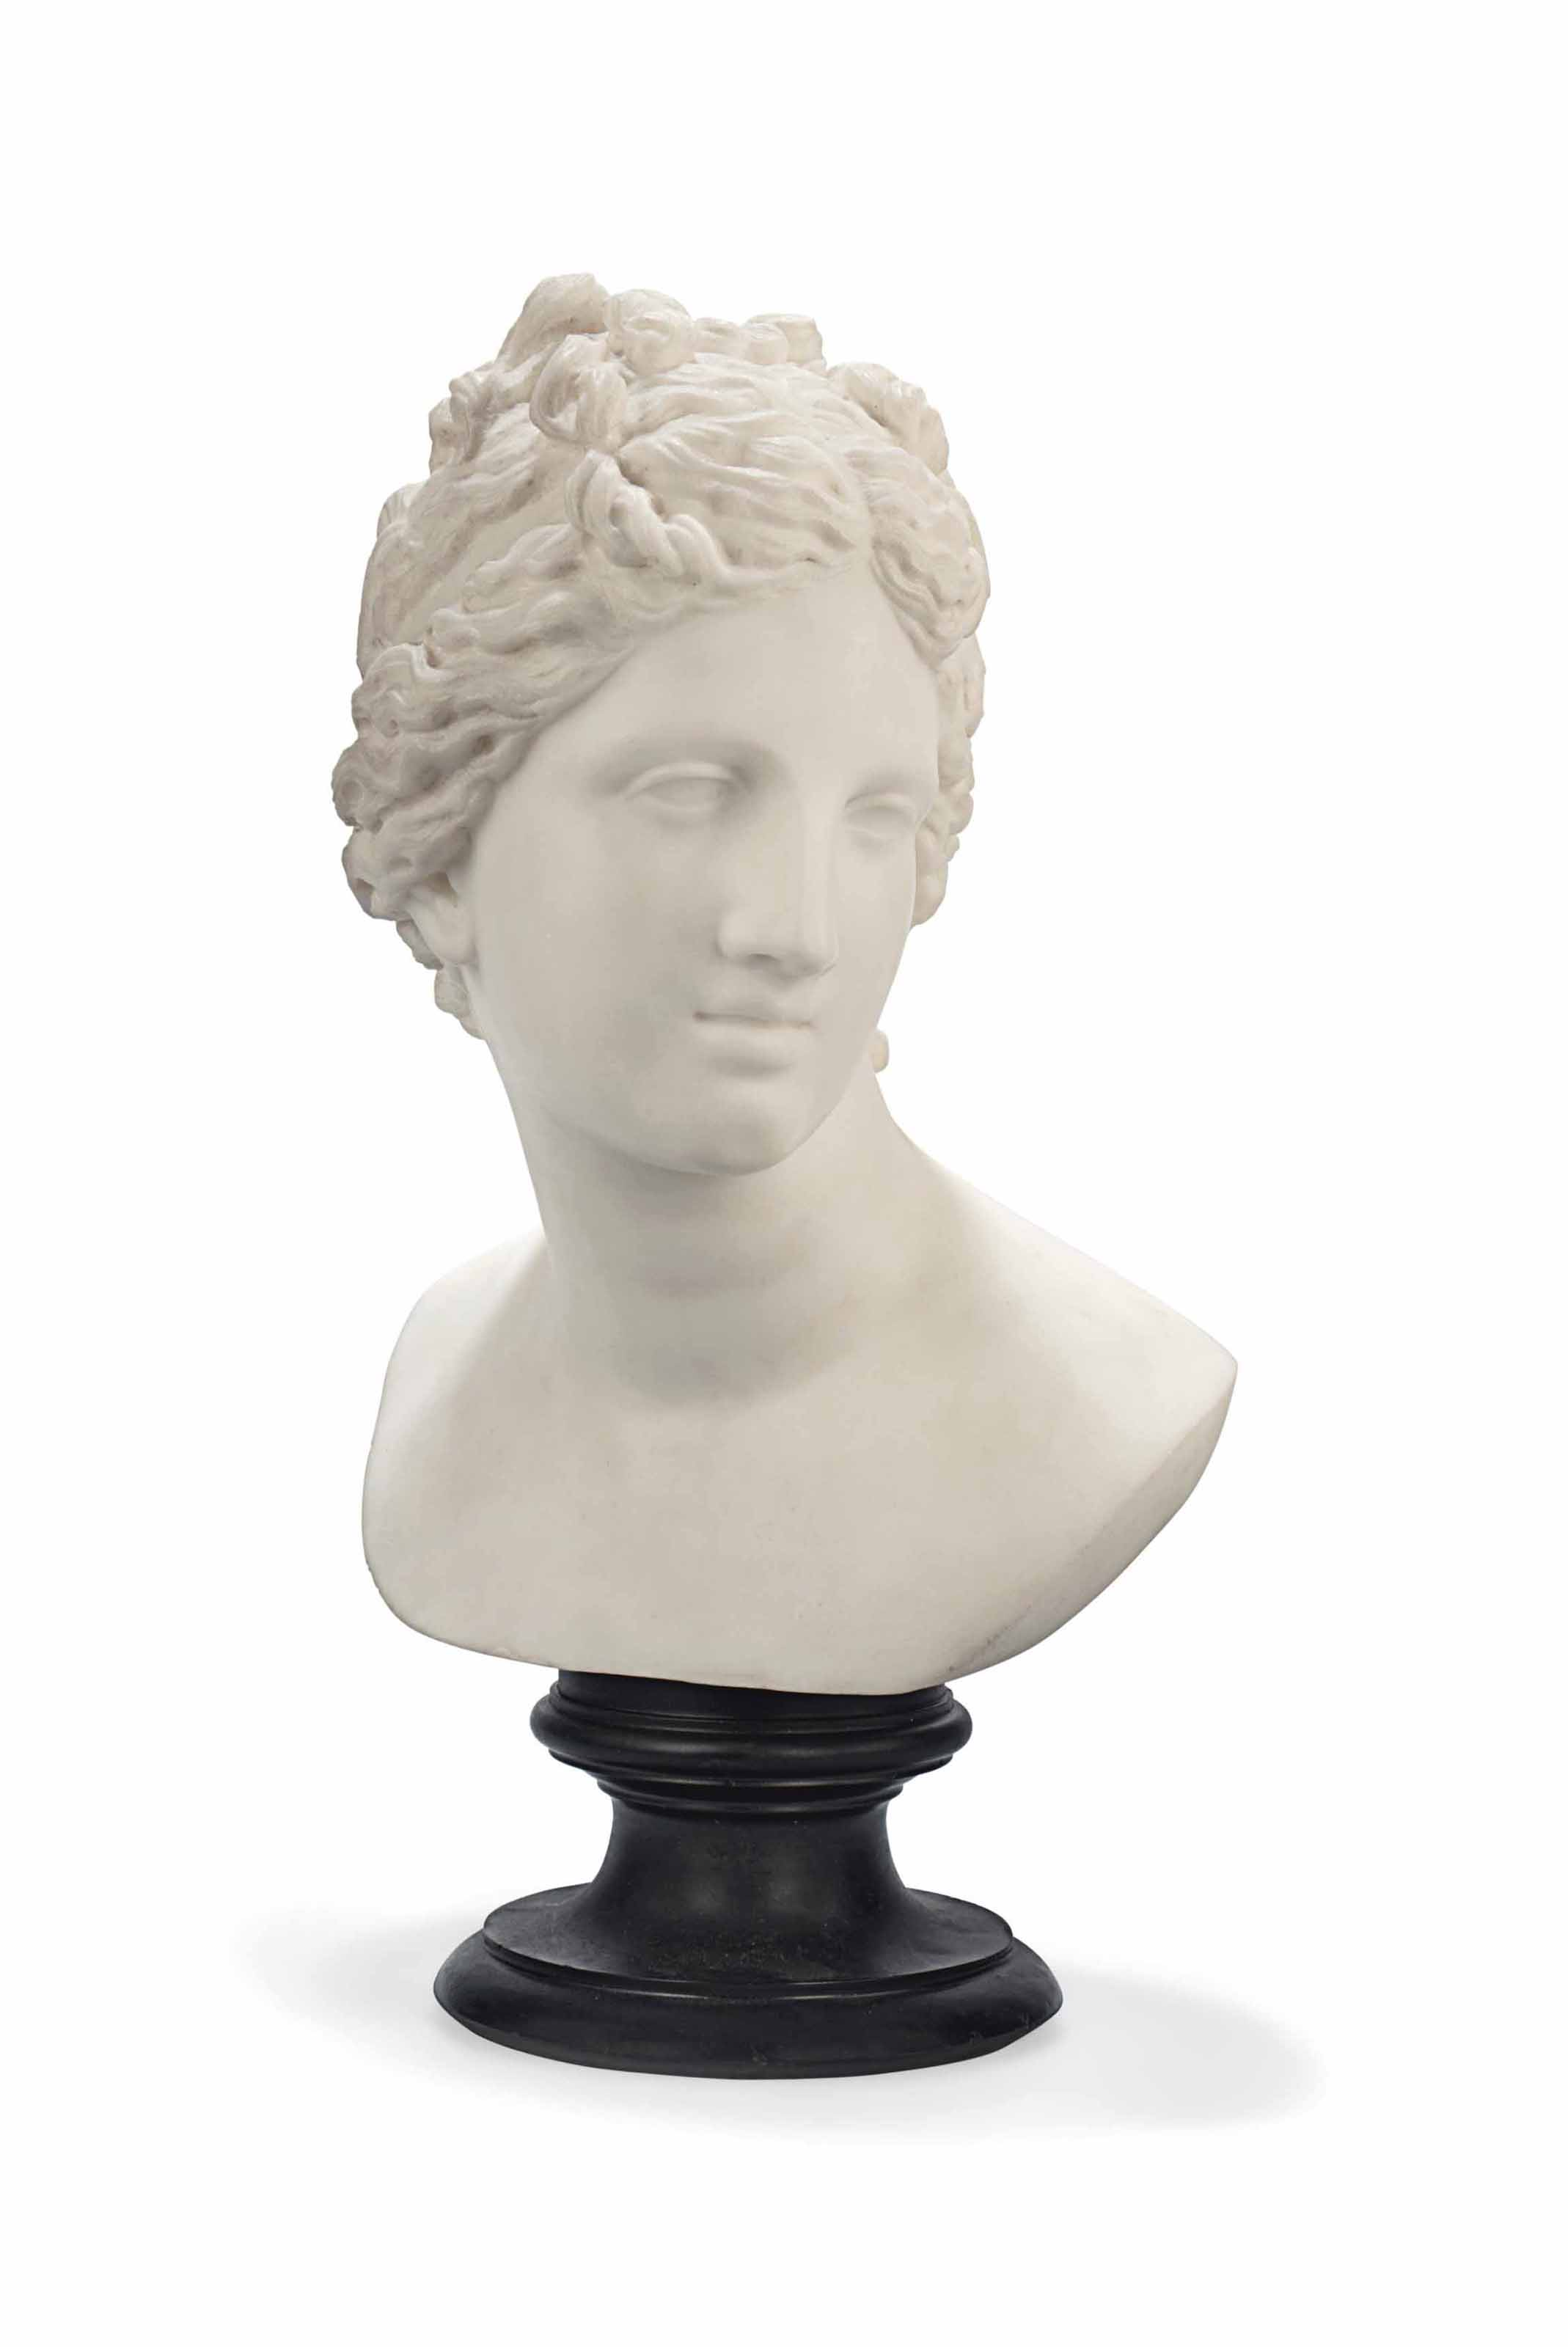 AN ITALIAN MARBLE BUST OF THE